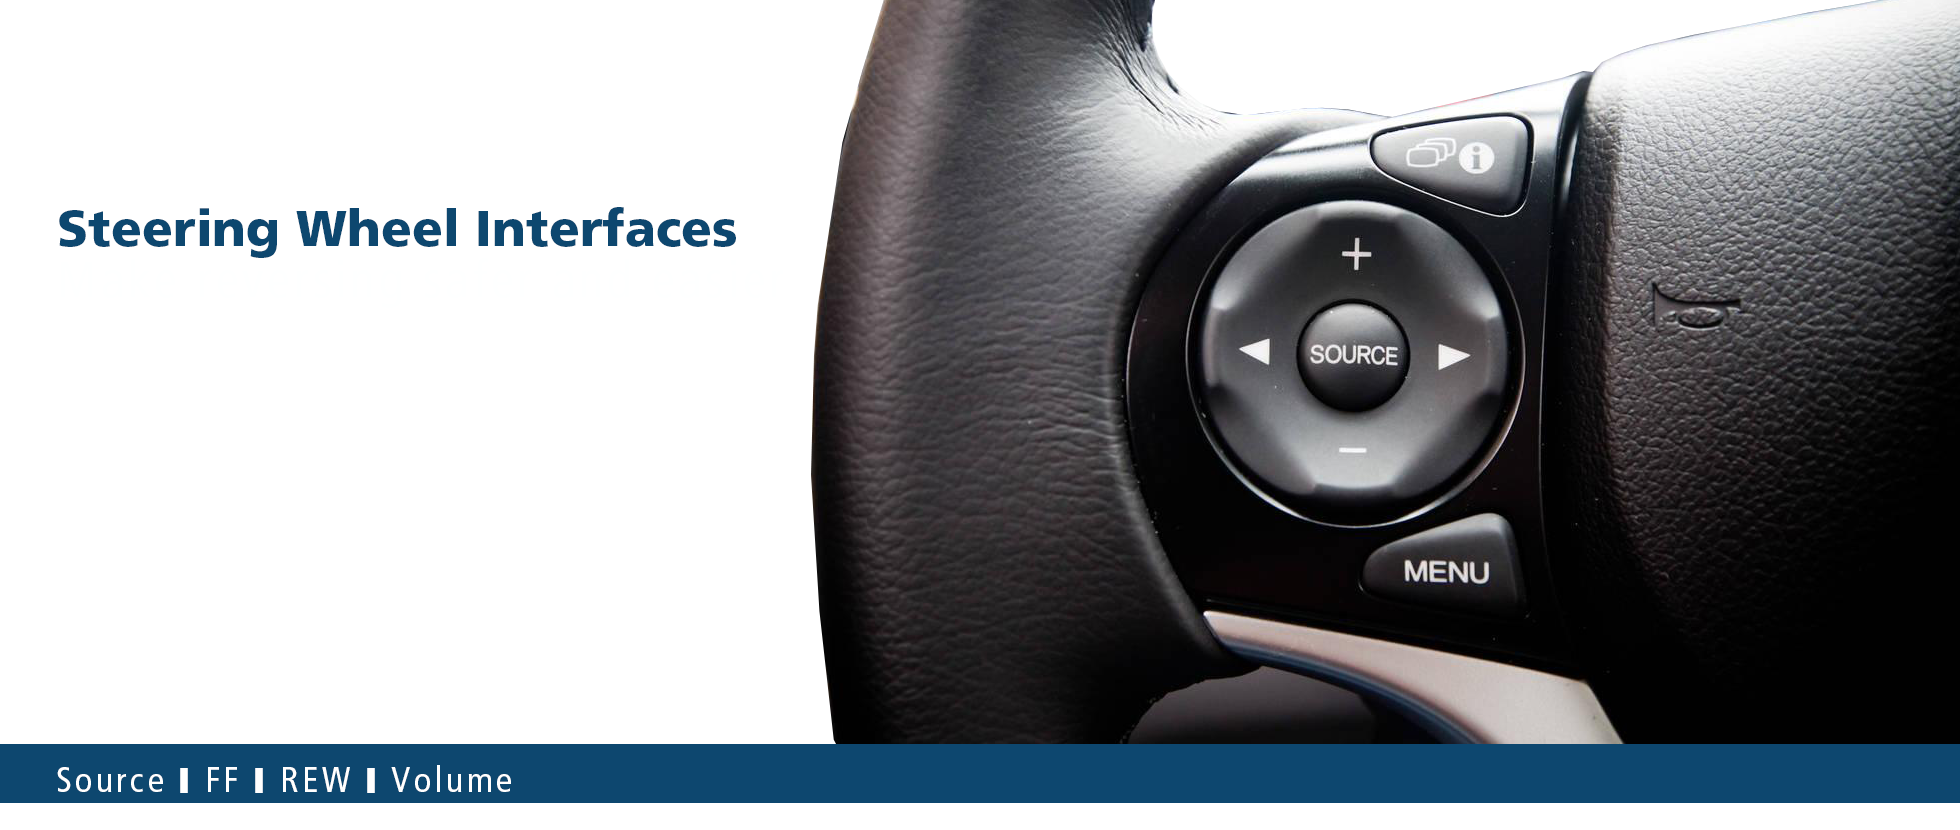 steering wheel control interfaces